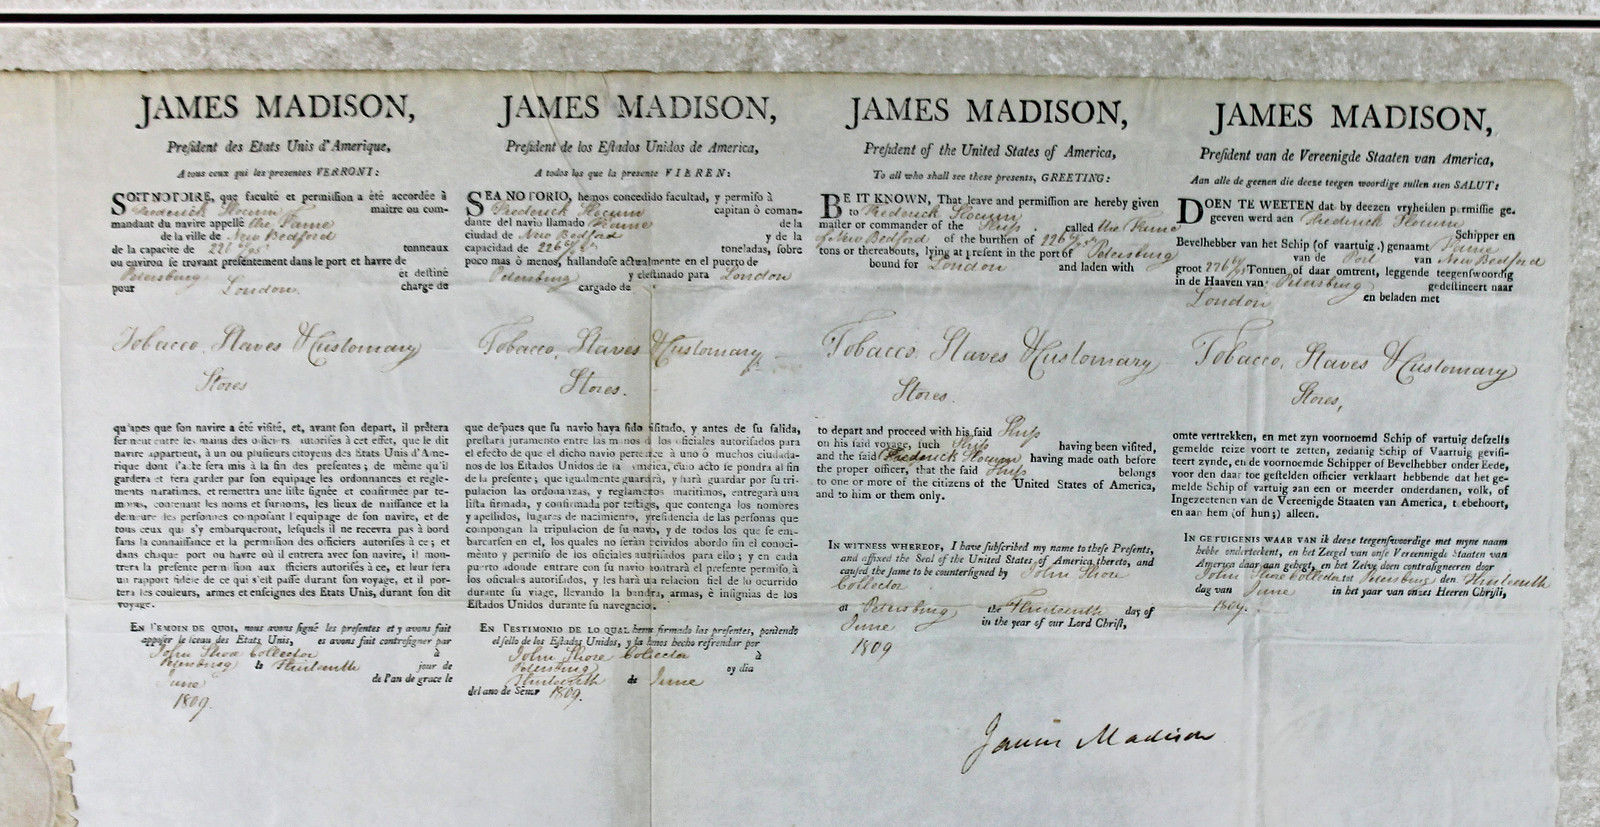 president james madison essays Madison went on to become the fourth president of the united states , james madison essay example, james madison essays, sample essay on james madison newer post older post home hot essays free essays, essay examples, sample essays and essay writing tips for students.